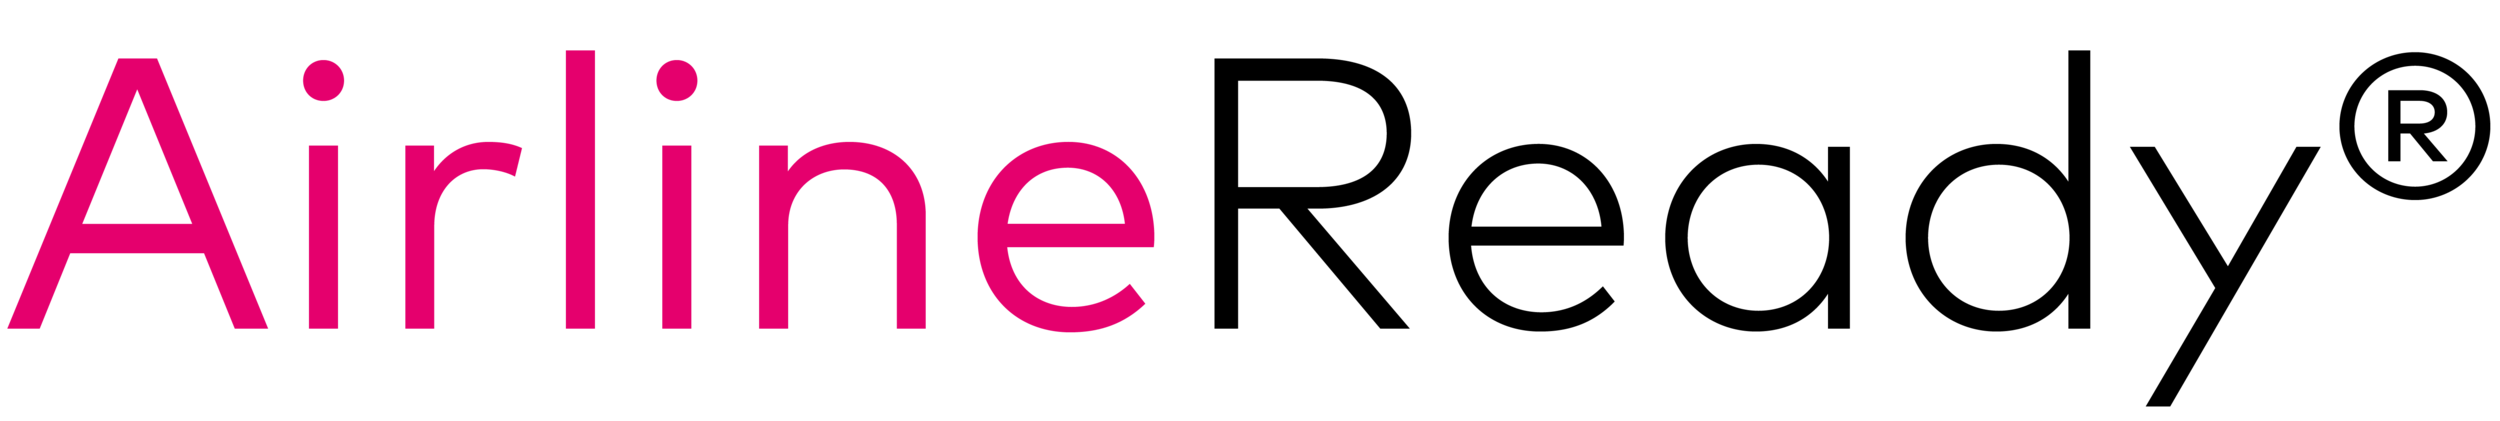 Airline Ready Logo.png